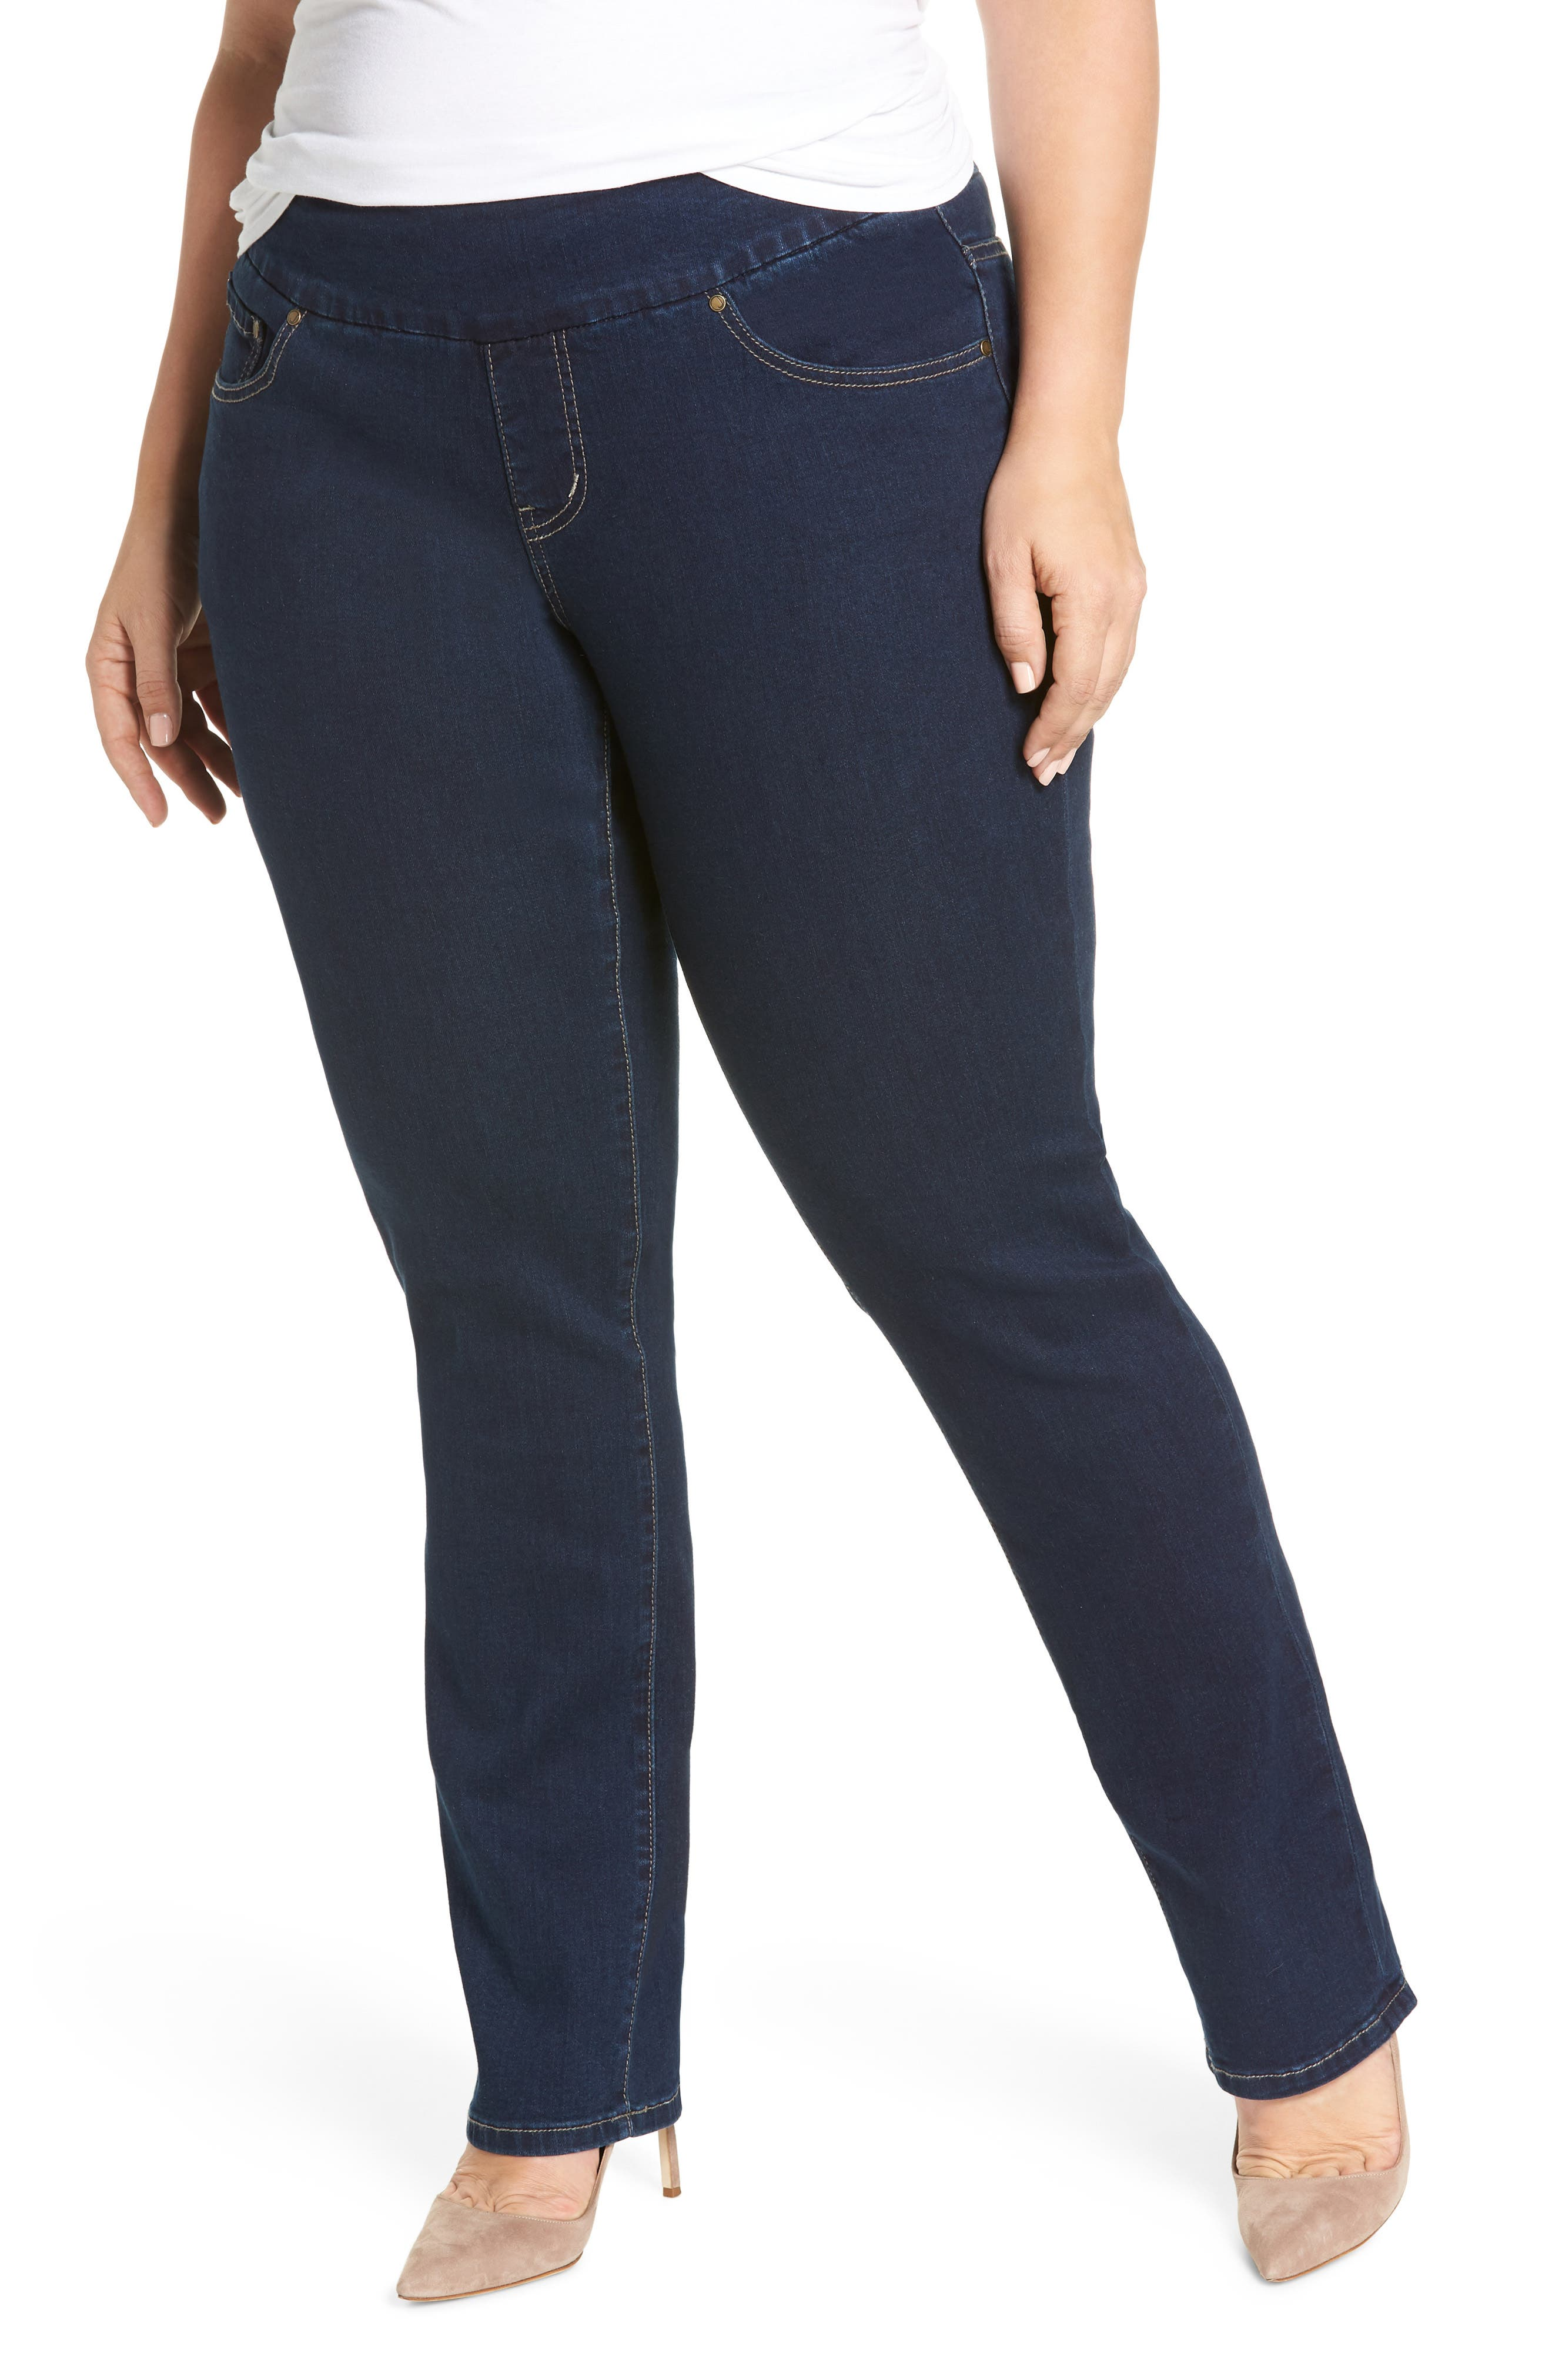 JAG JEANS, Paley Pull-On Bootcut Jeans, Main thumbnail 1, color, MED INDIGO